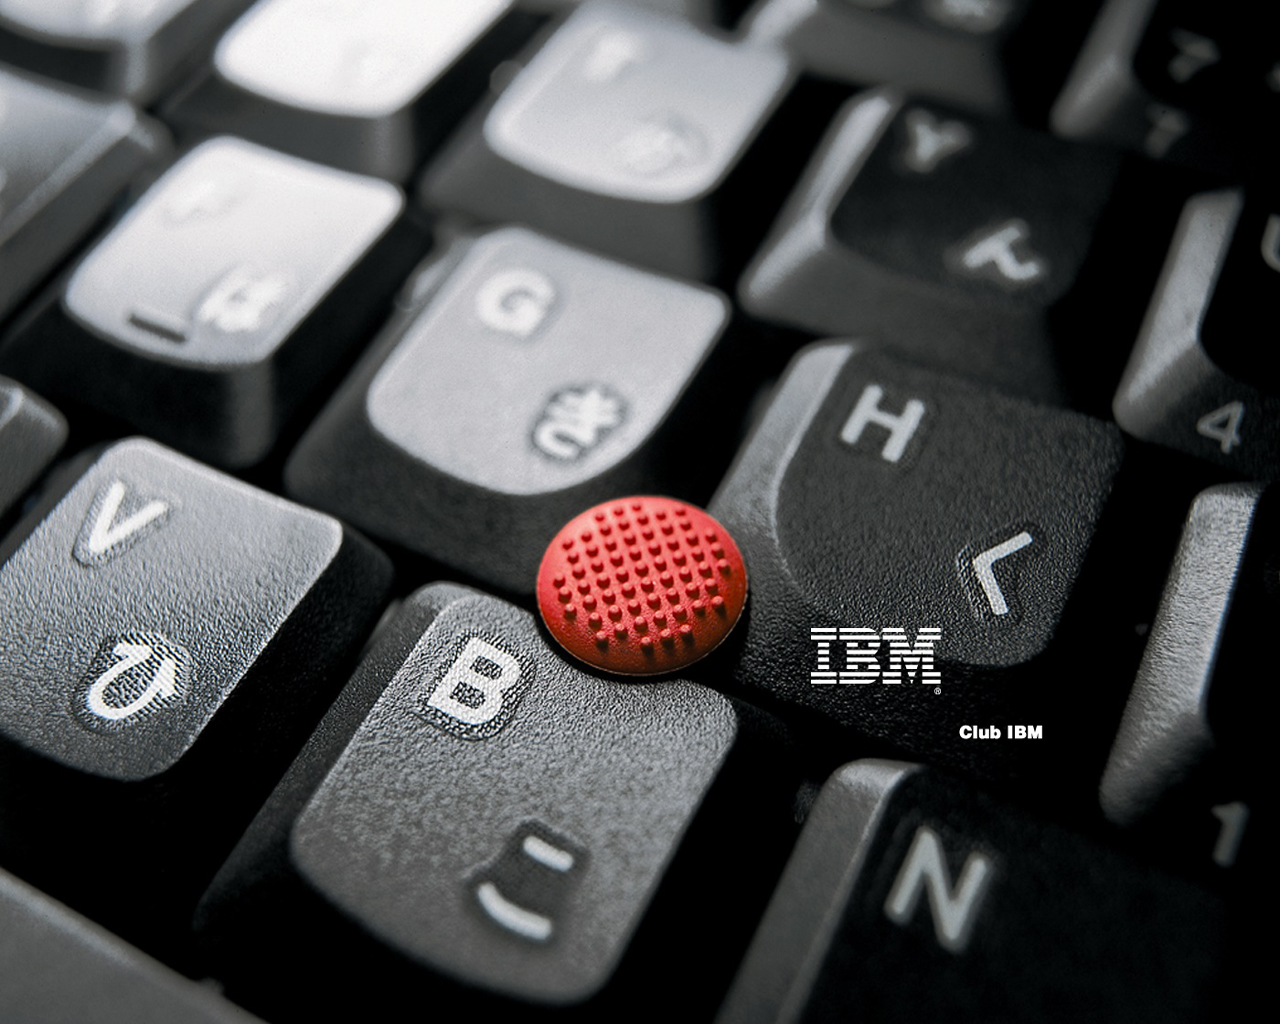 Ibm keyboard wallpapers ibm keyboard stock photos image ibm keyboard wallpapers and stock photos publicscrutiny Image collections